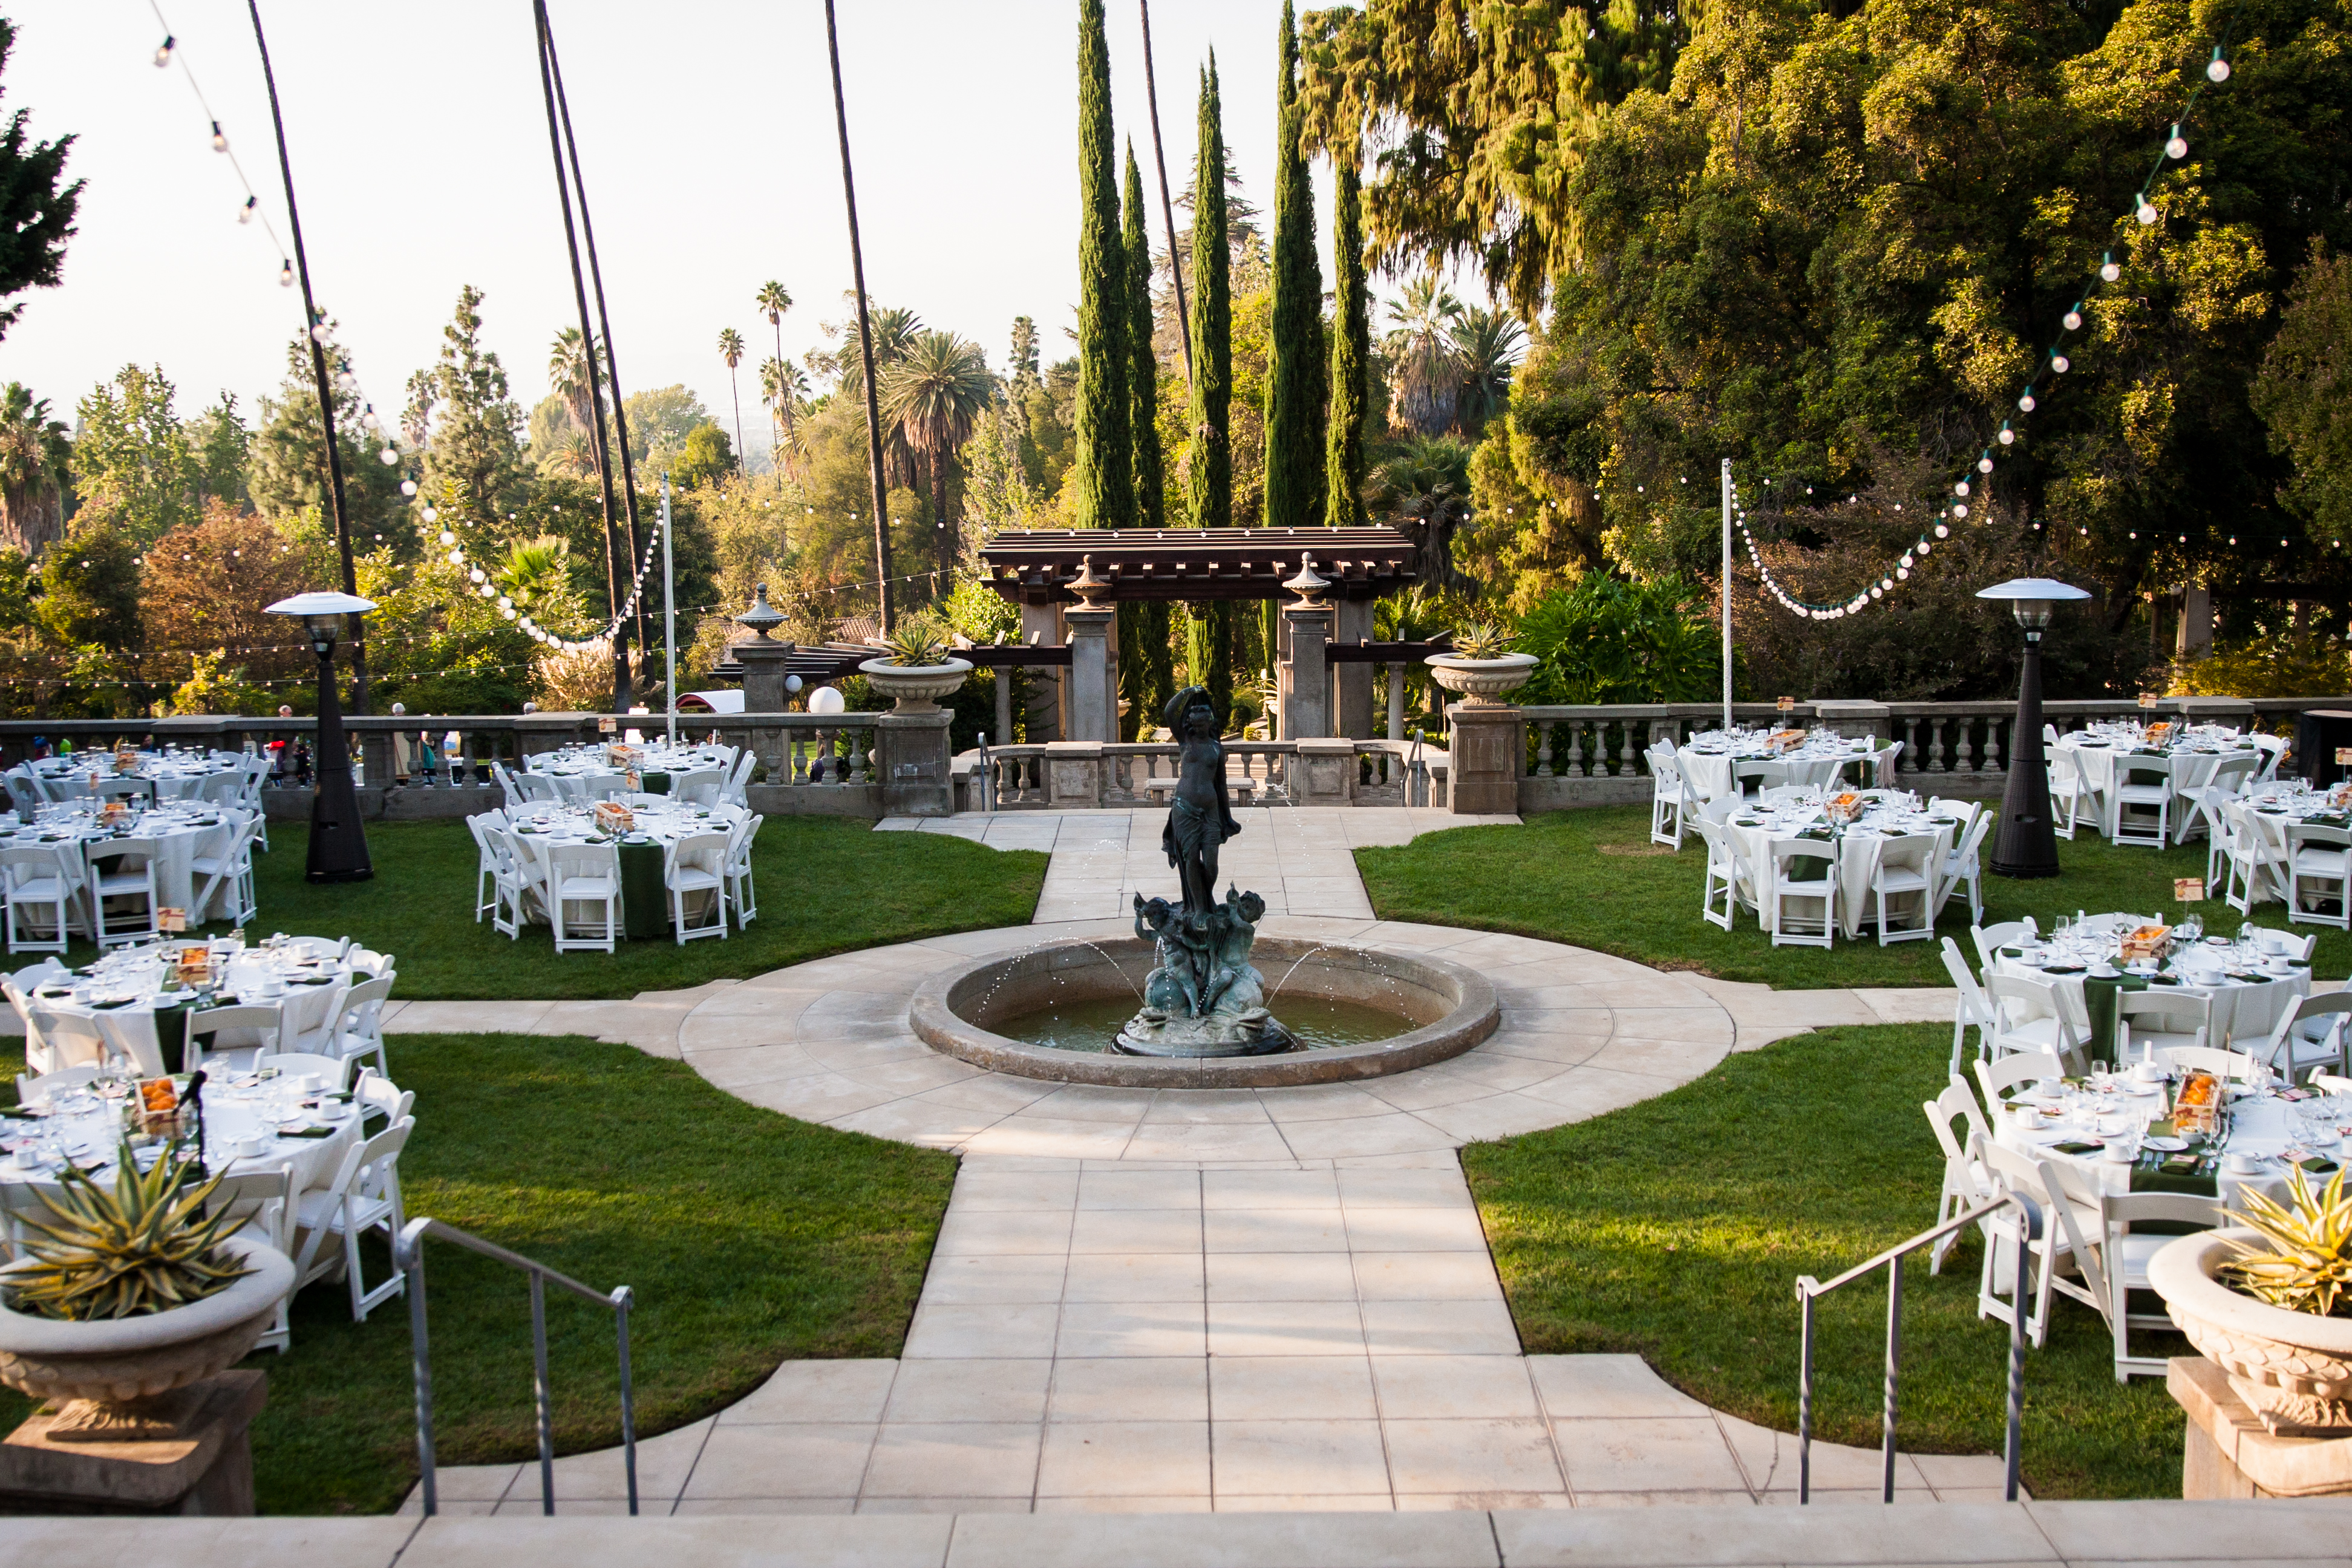 2014 Kimberlycrestsoiree 30 Zps498aa0af Kimberly Crest House Gardens